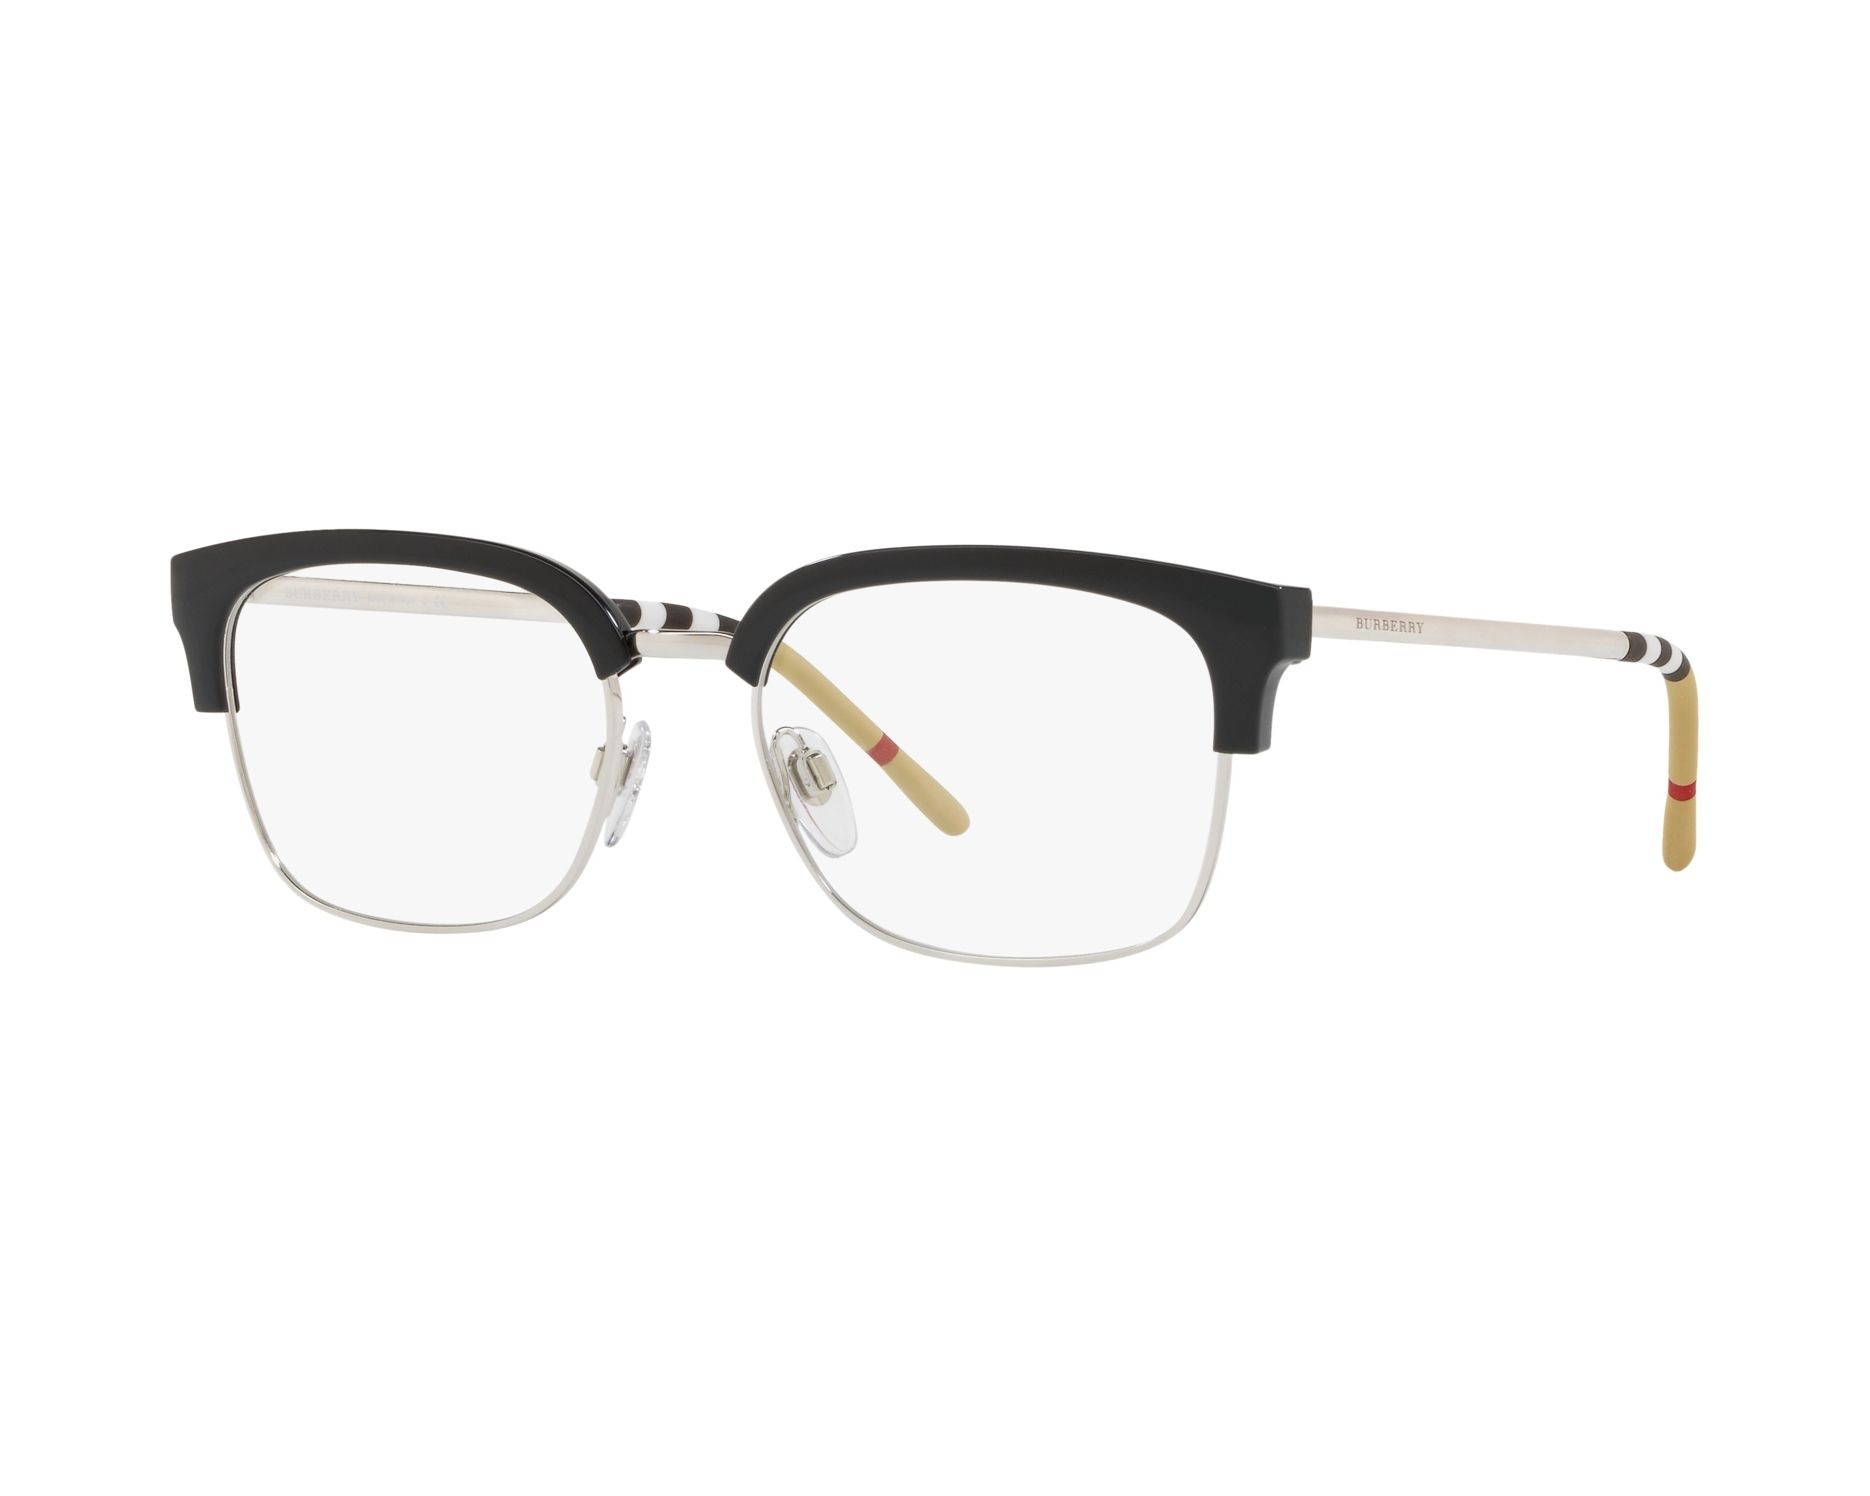 eyeglasses Burberry BE-2273 3001 54-18 Black Silver